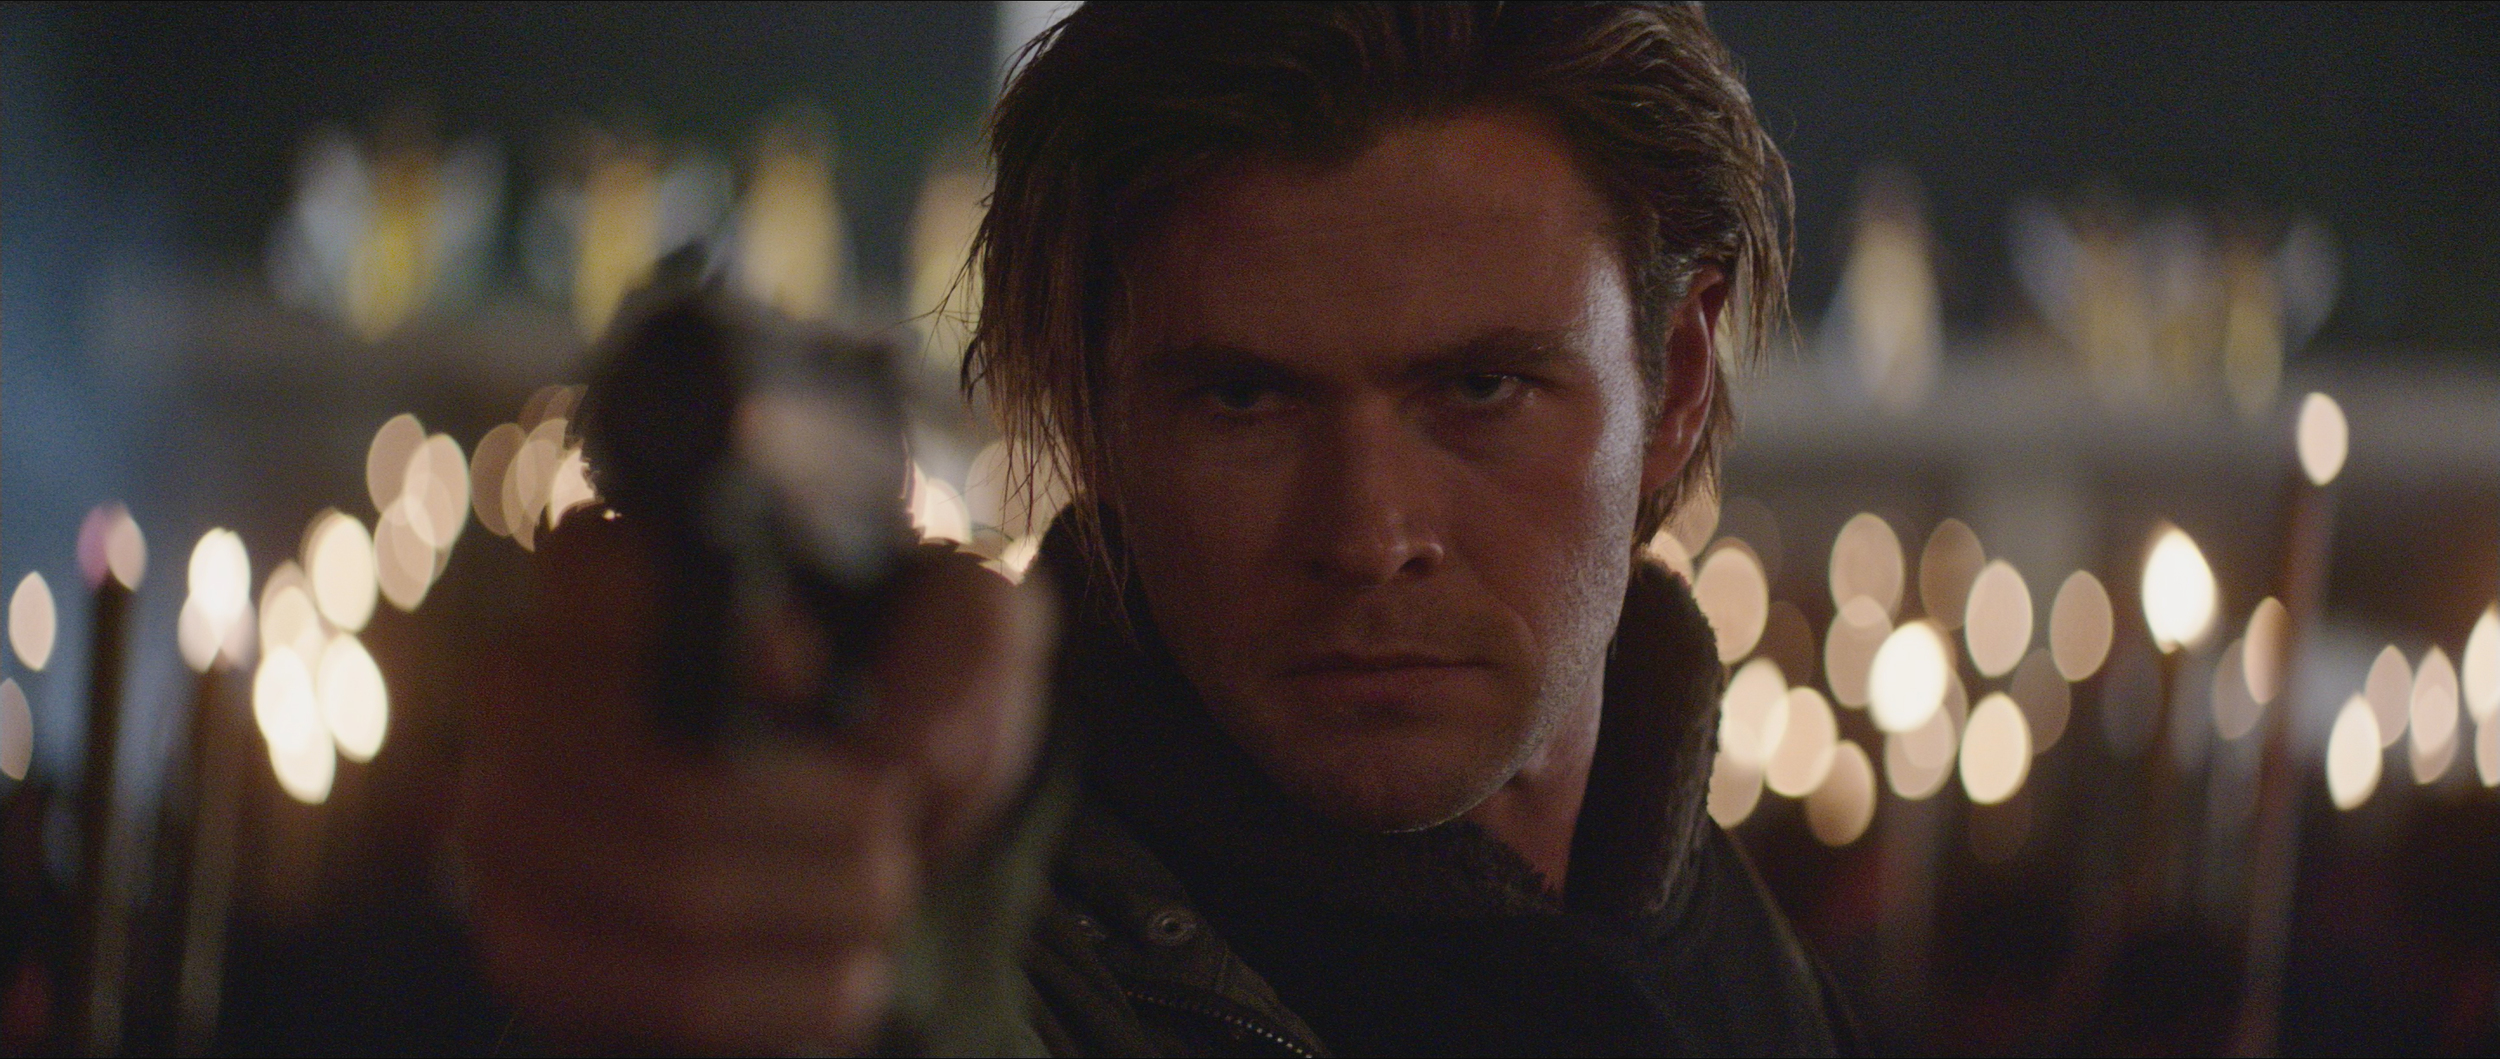 chris-hemsworth-blackhat-movie-2.jpg